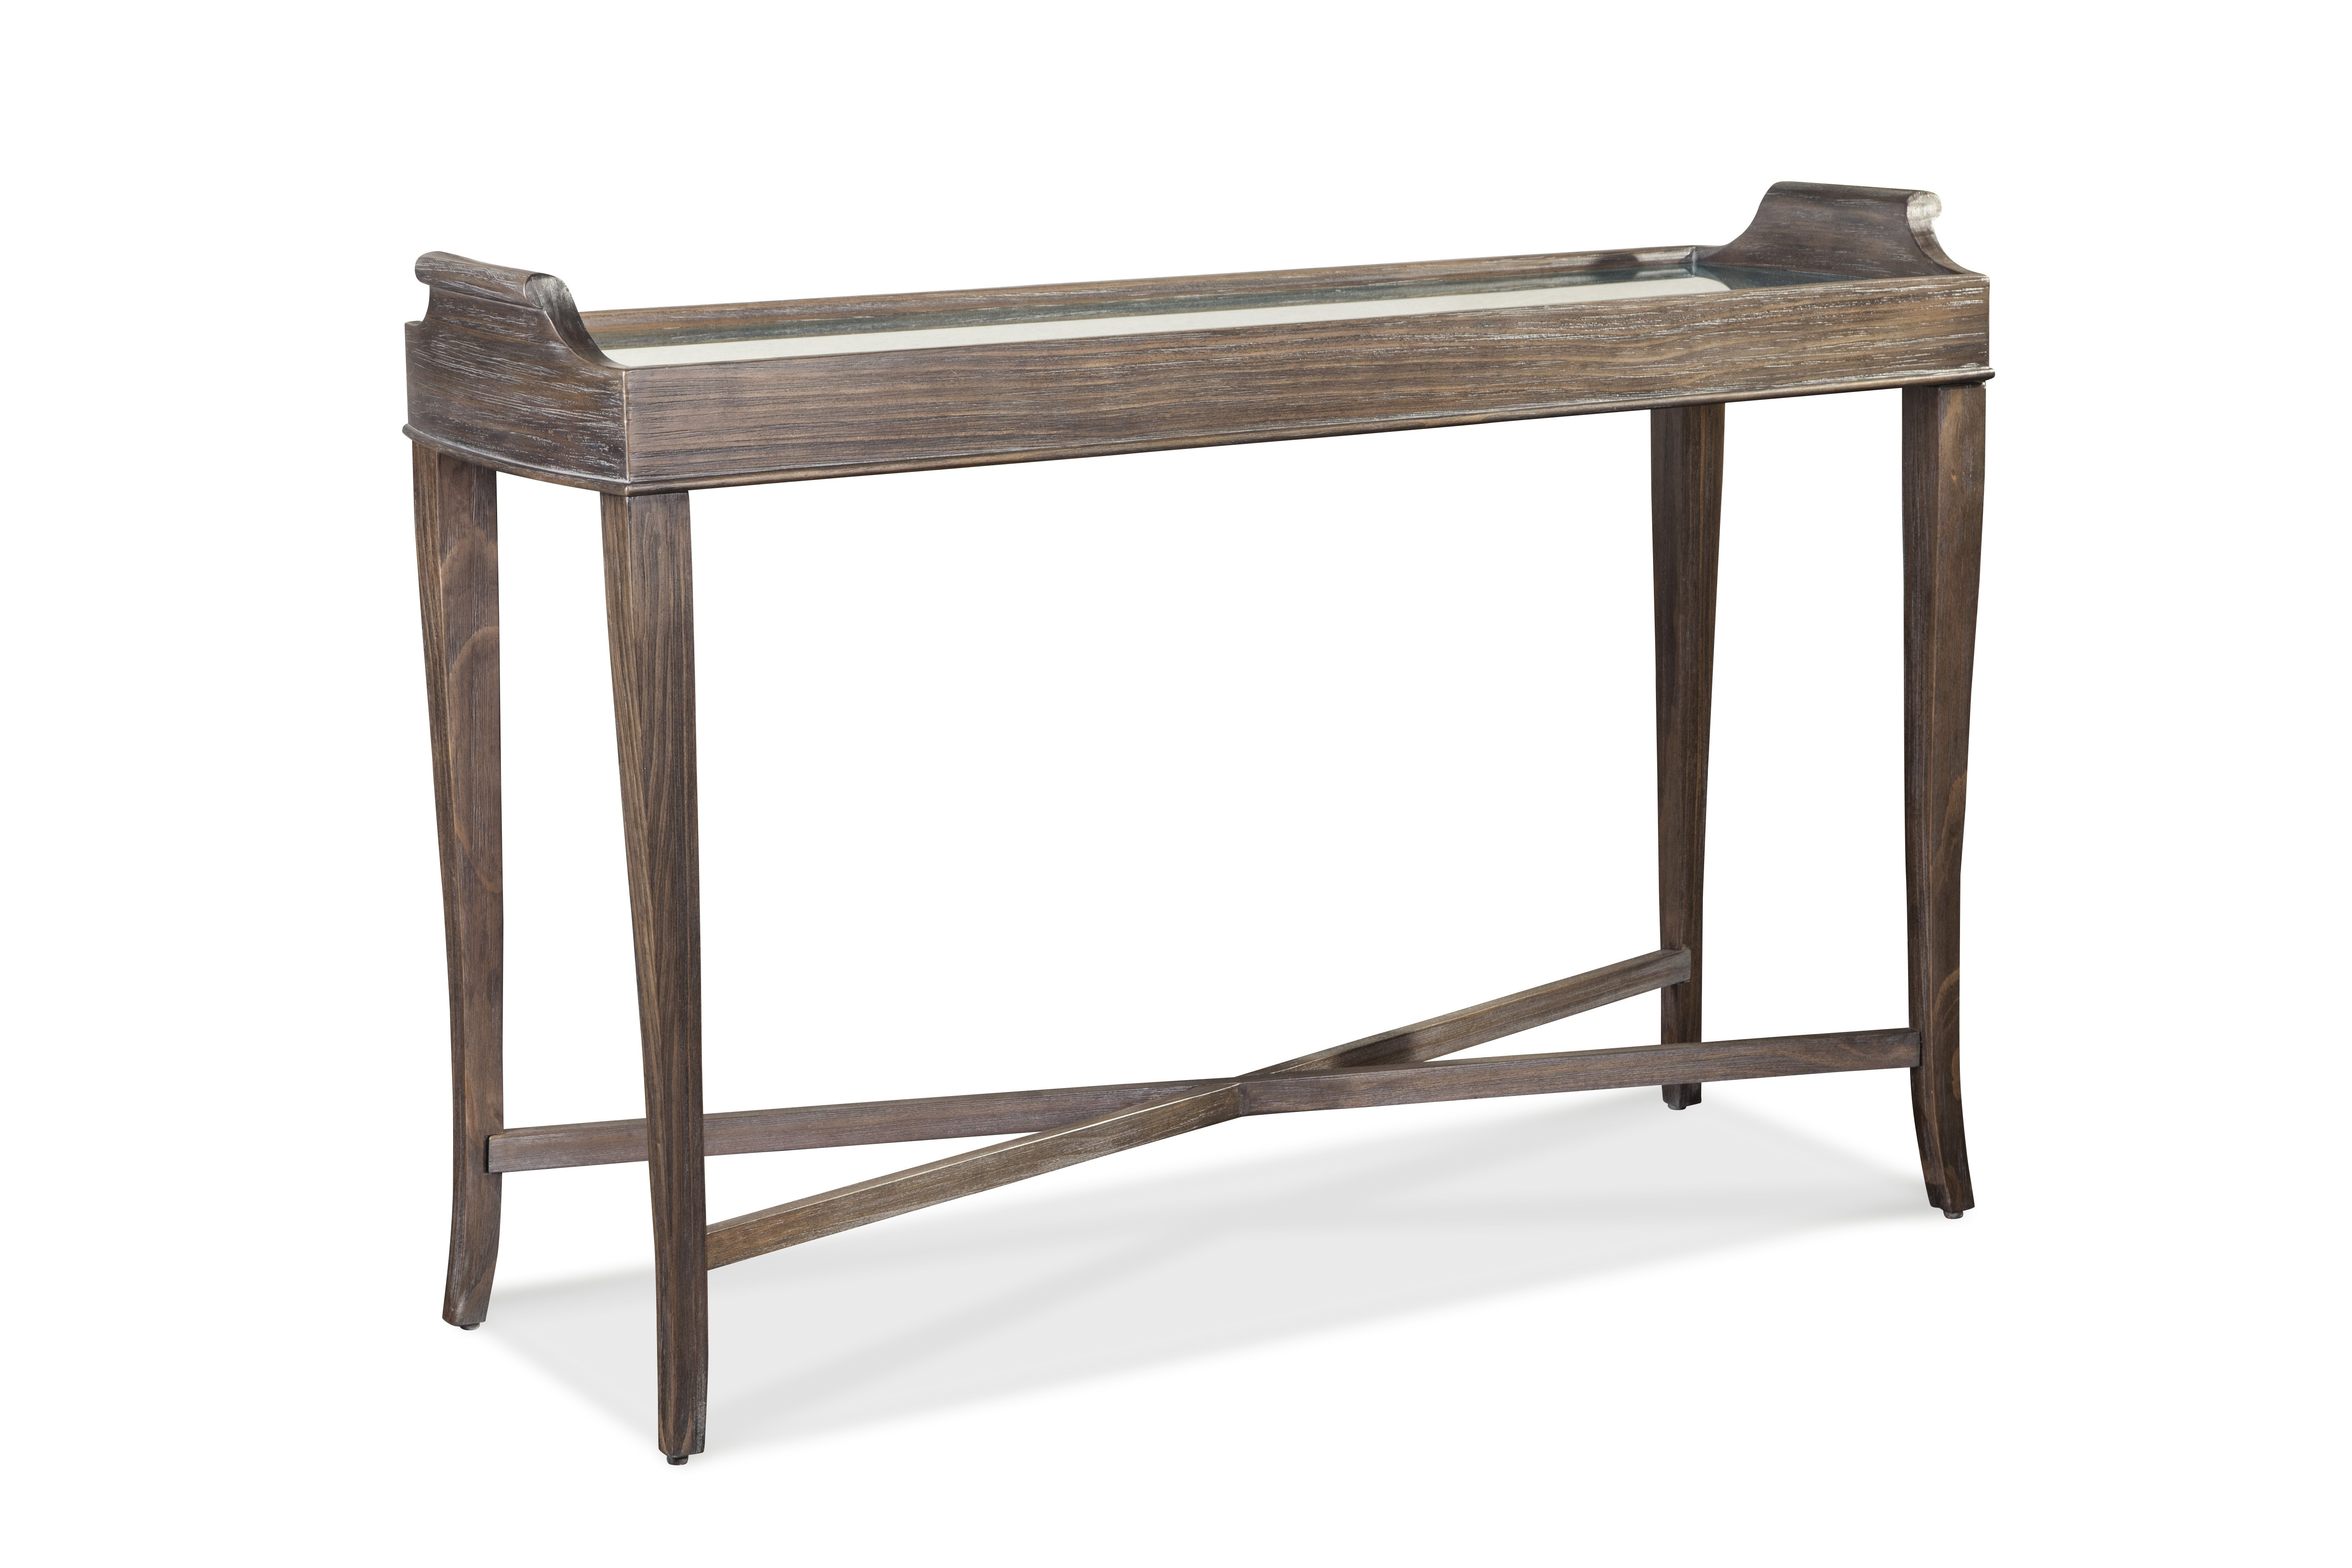 ART Furniture St. Germain Console Table 215314 1513